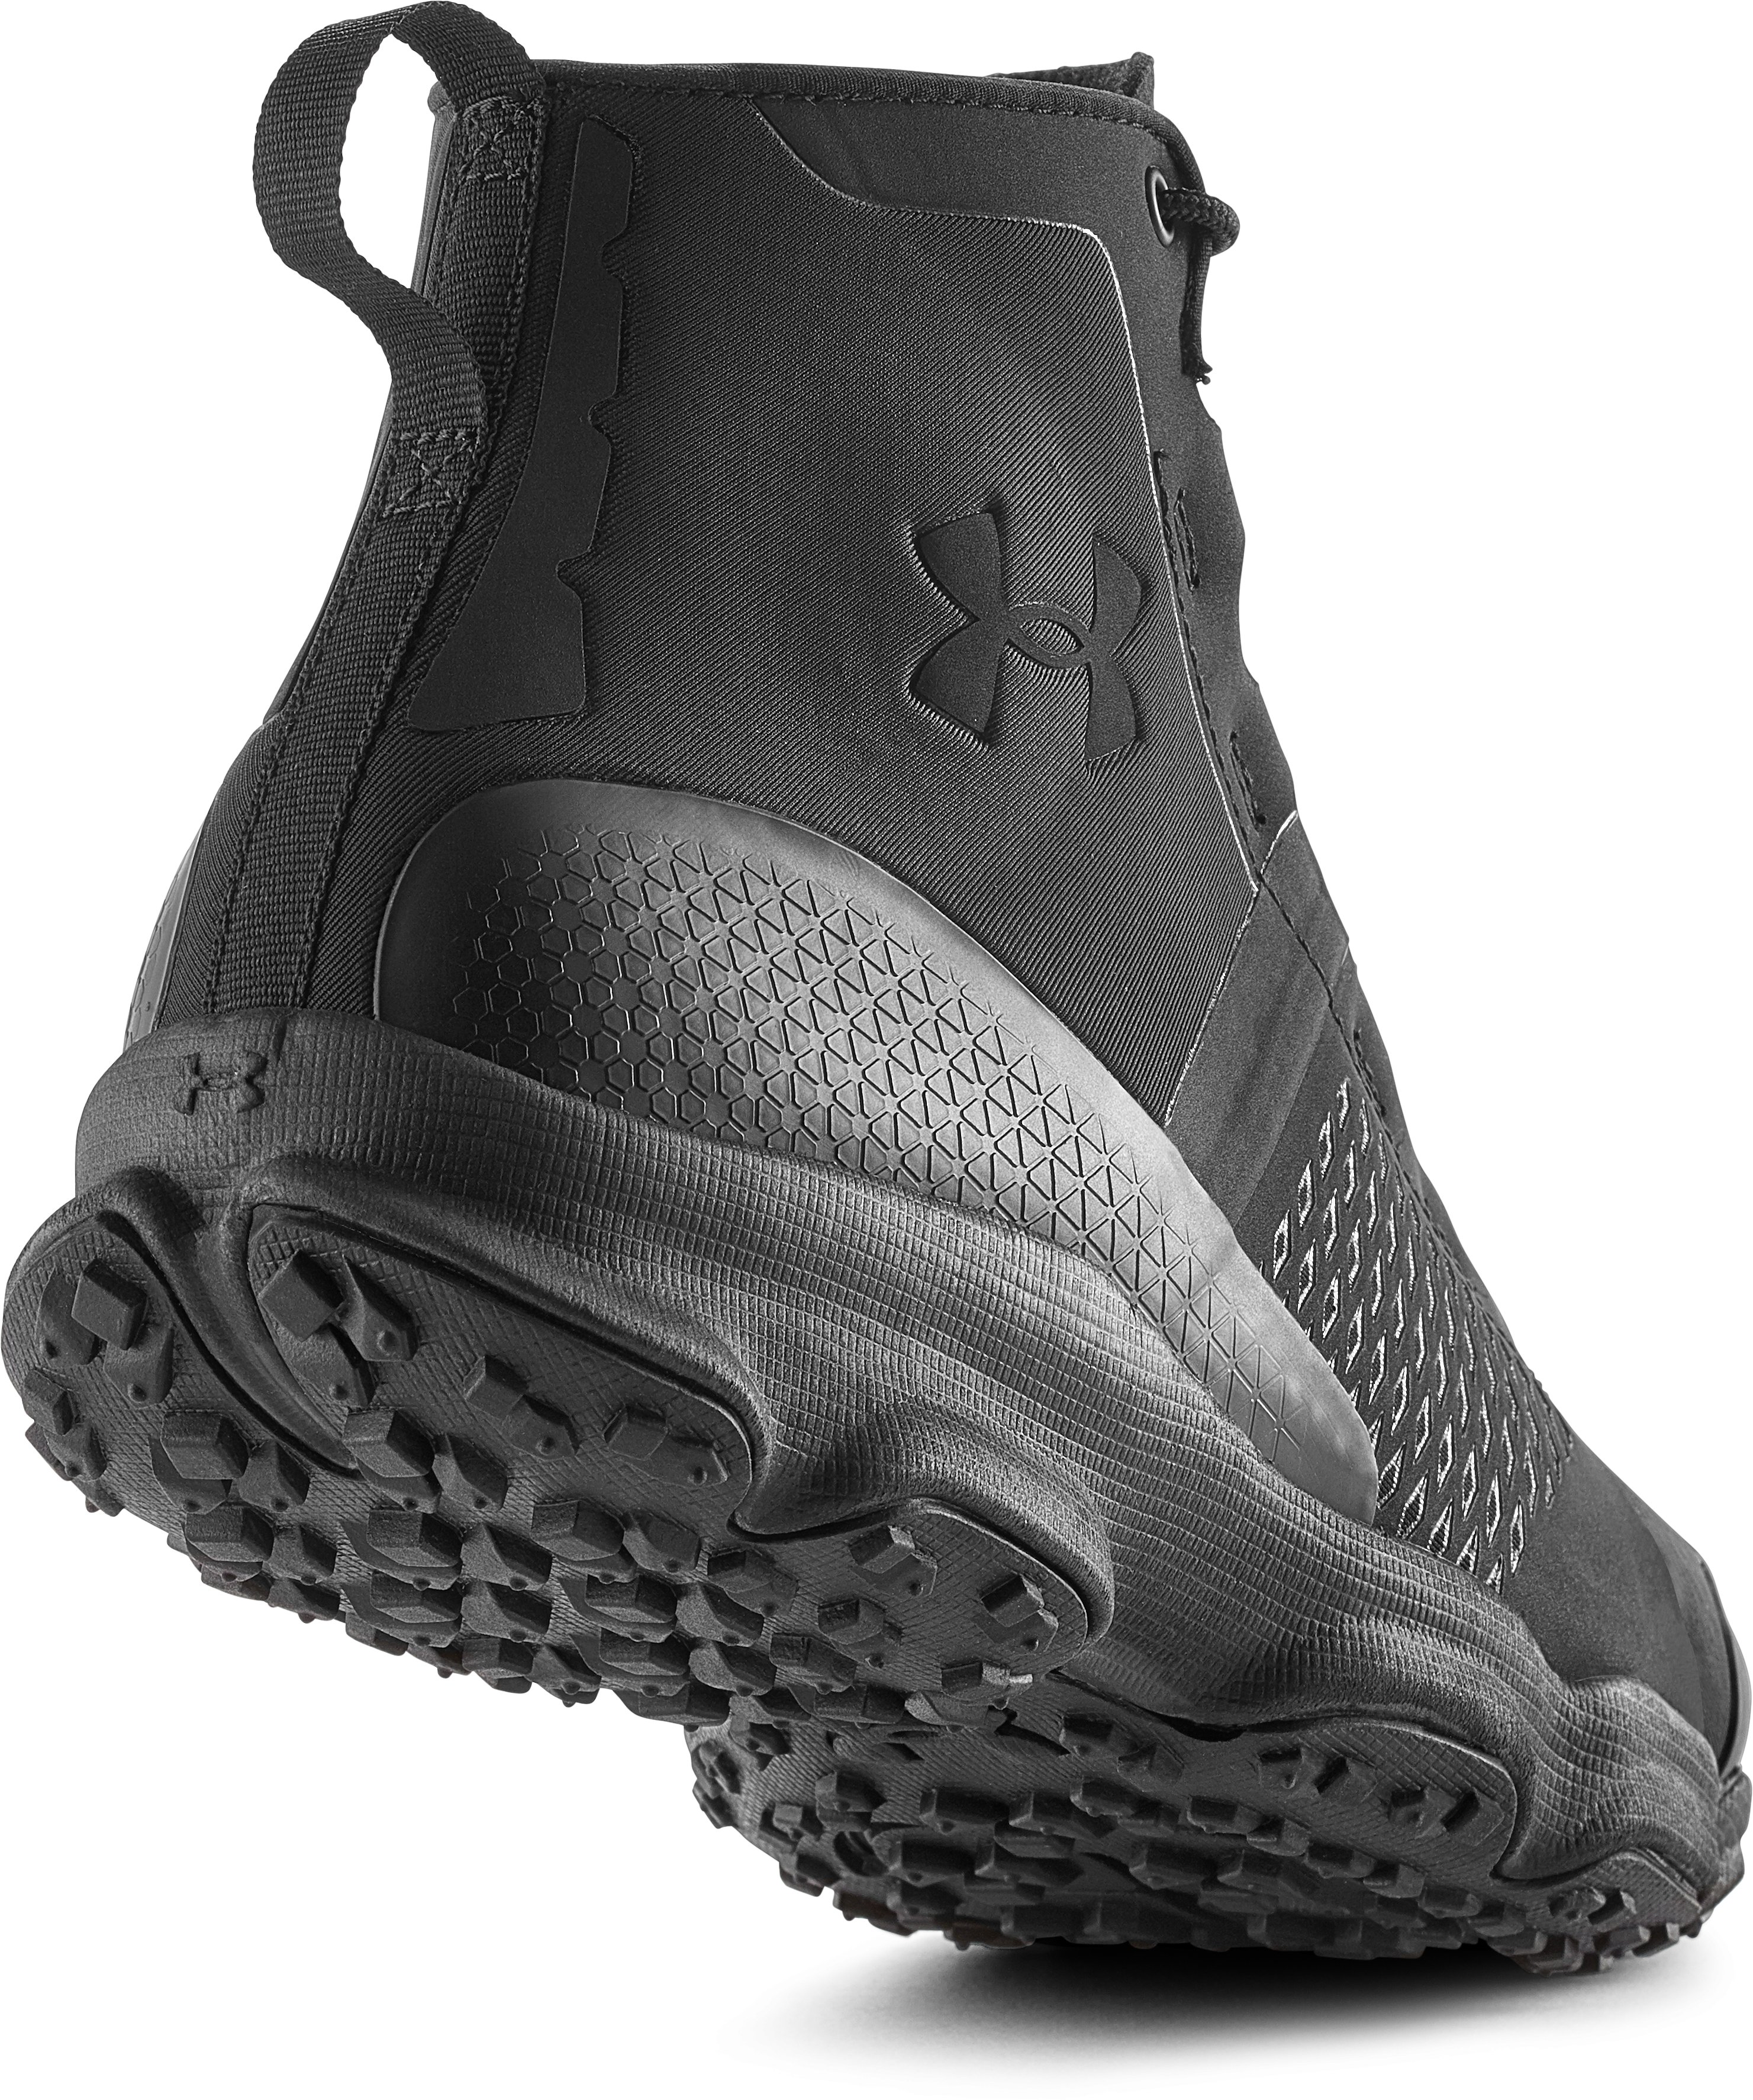 Men's UA SpeedFit Hike Boots, Black